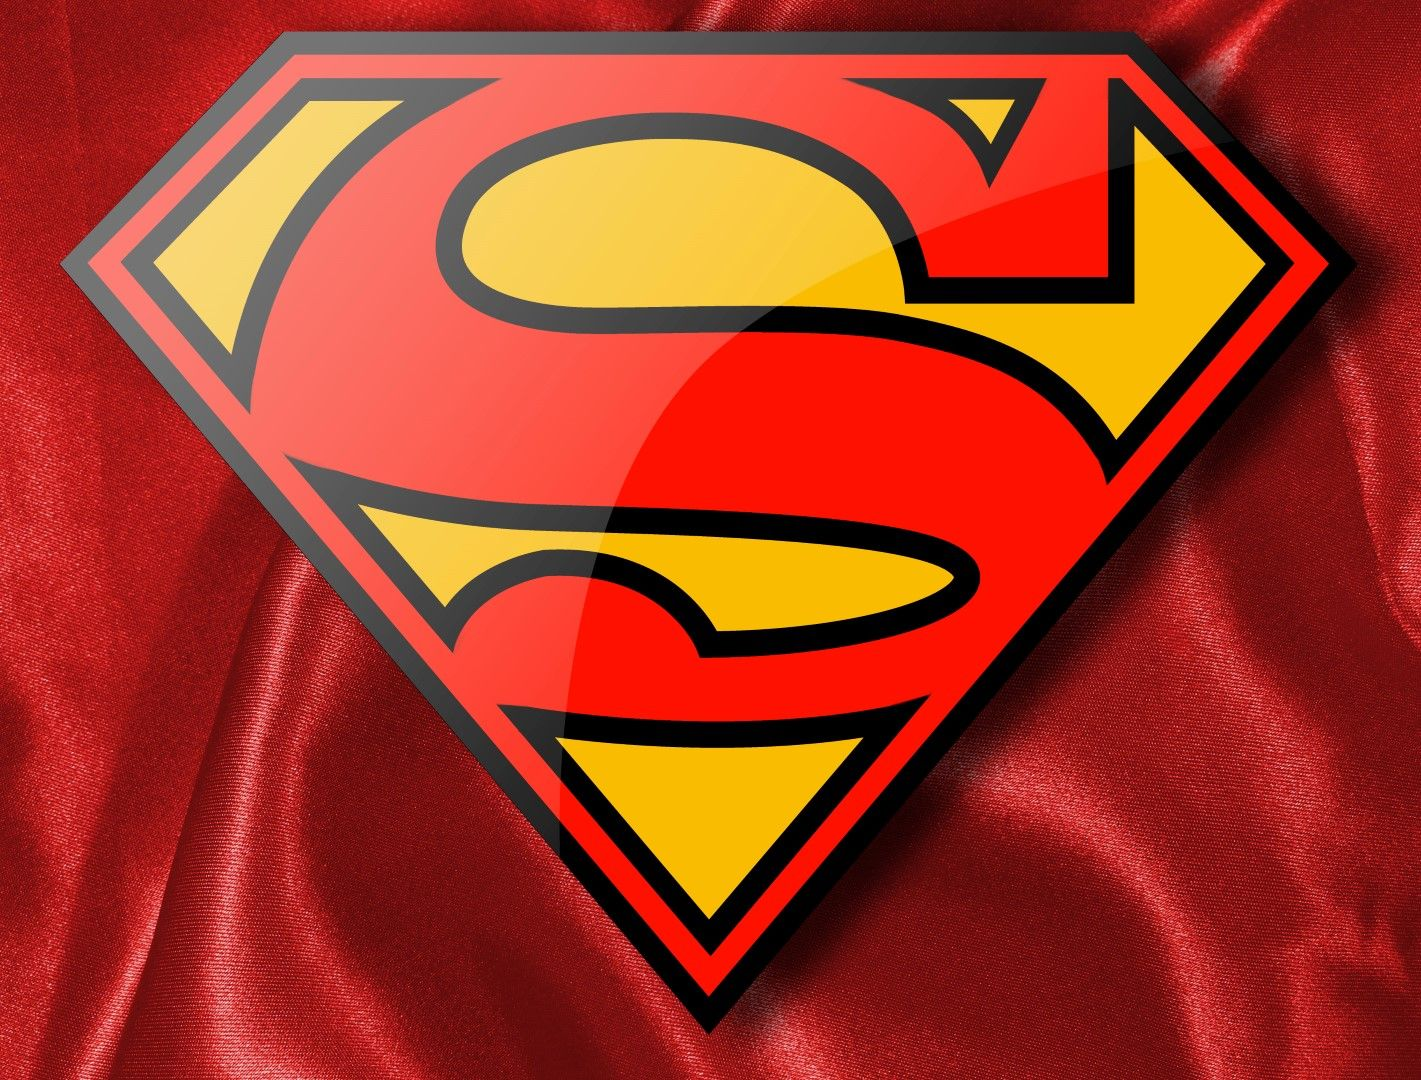 Finally Color Supermans Logo The Traditional Red And Yellow And